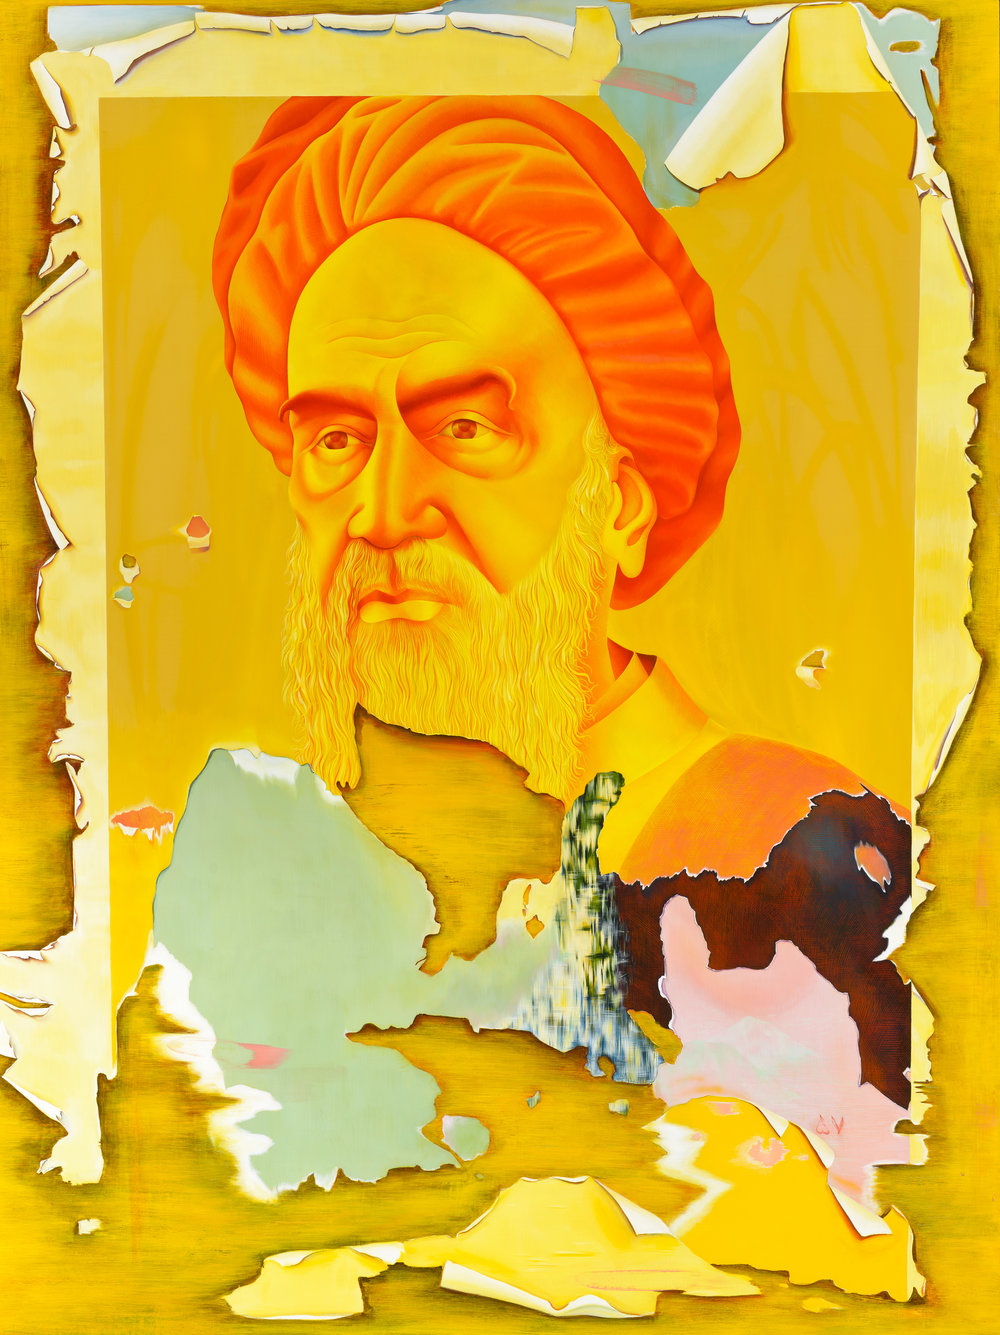 Taravat Talepasand  Khomeini , 2015 egg tempera and oil on linen 48h x 36w in.